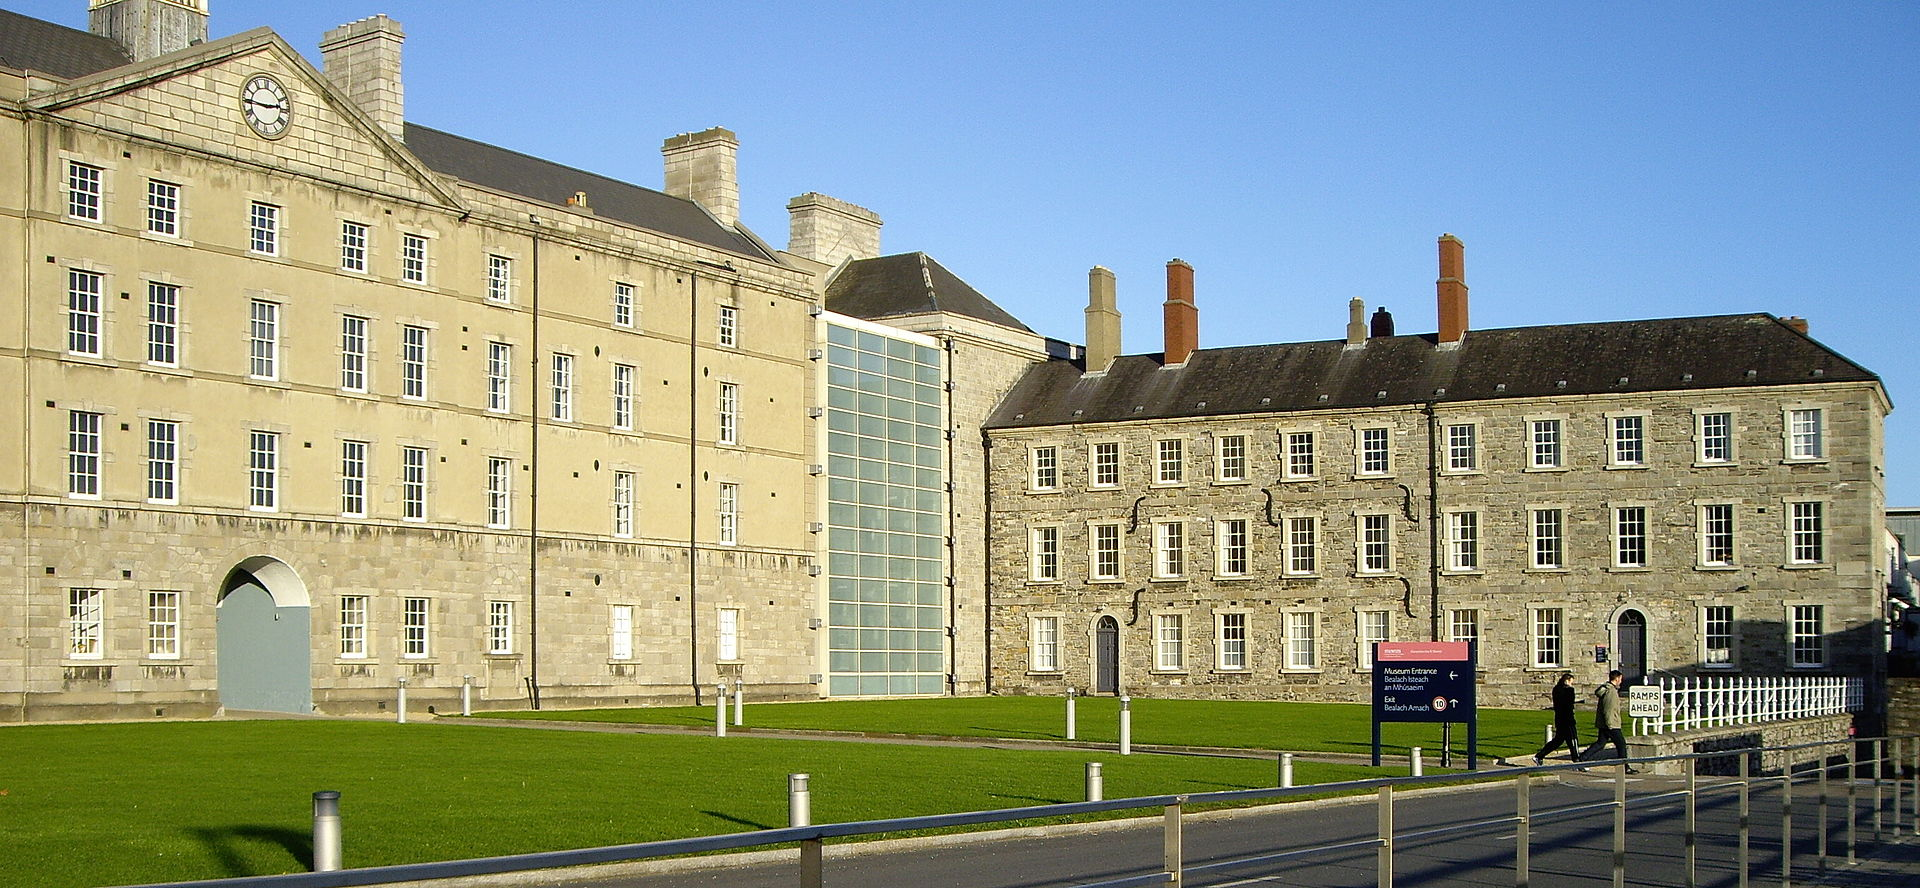 National Museum of Ireland. Image Credit: Wikipedia